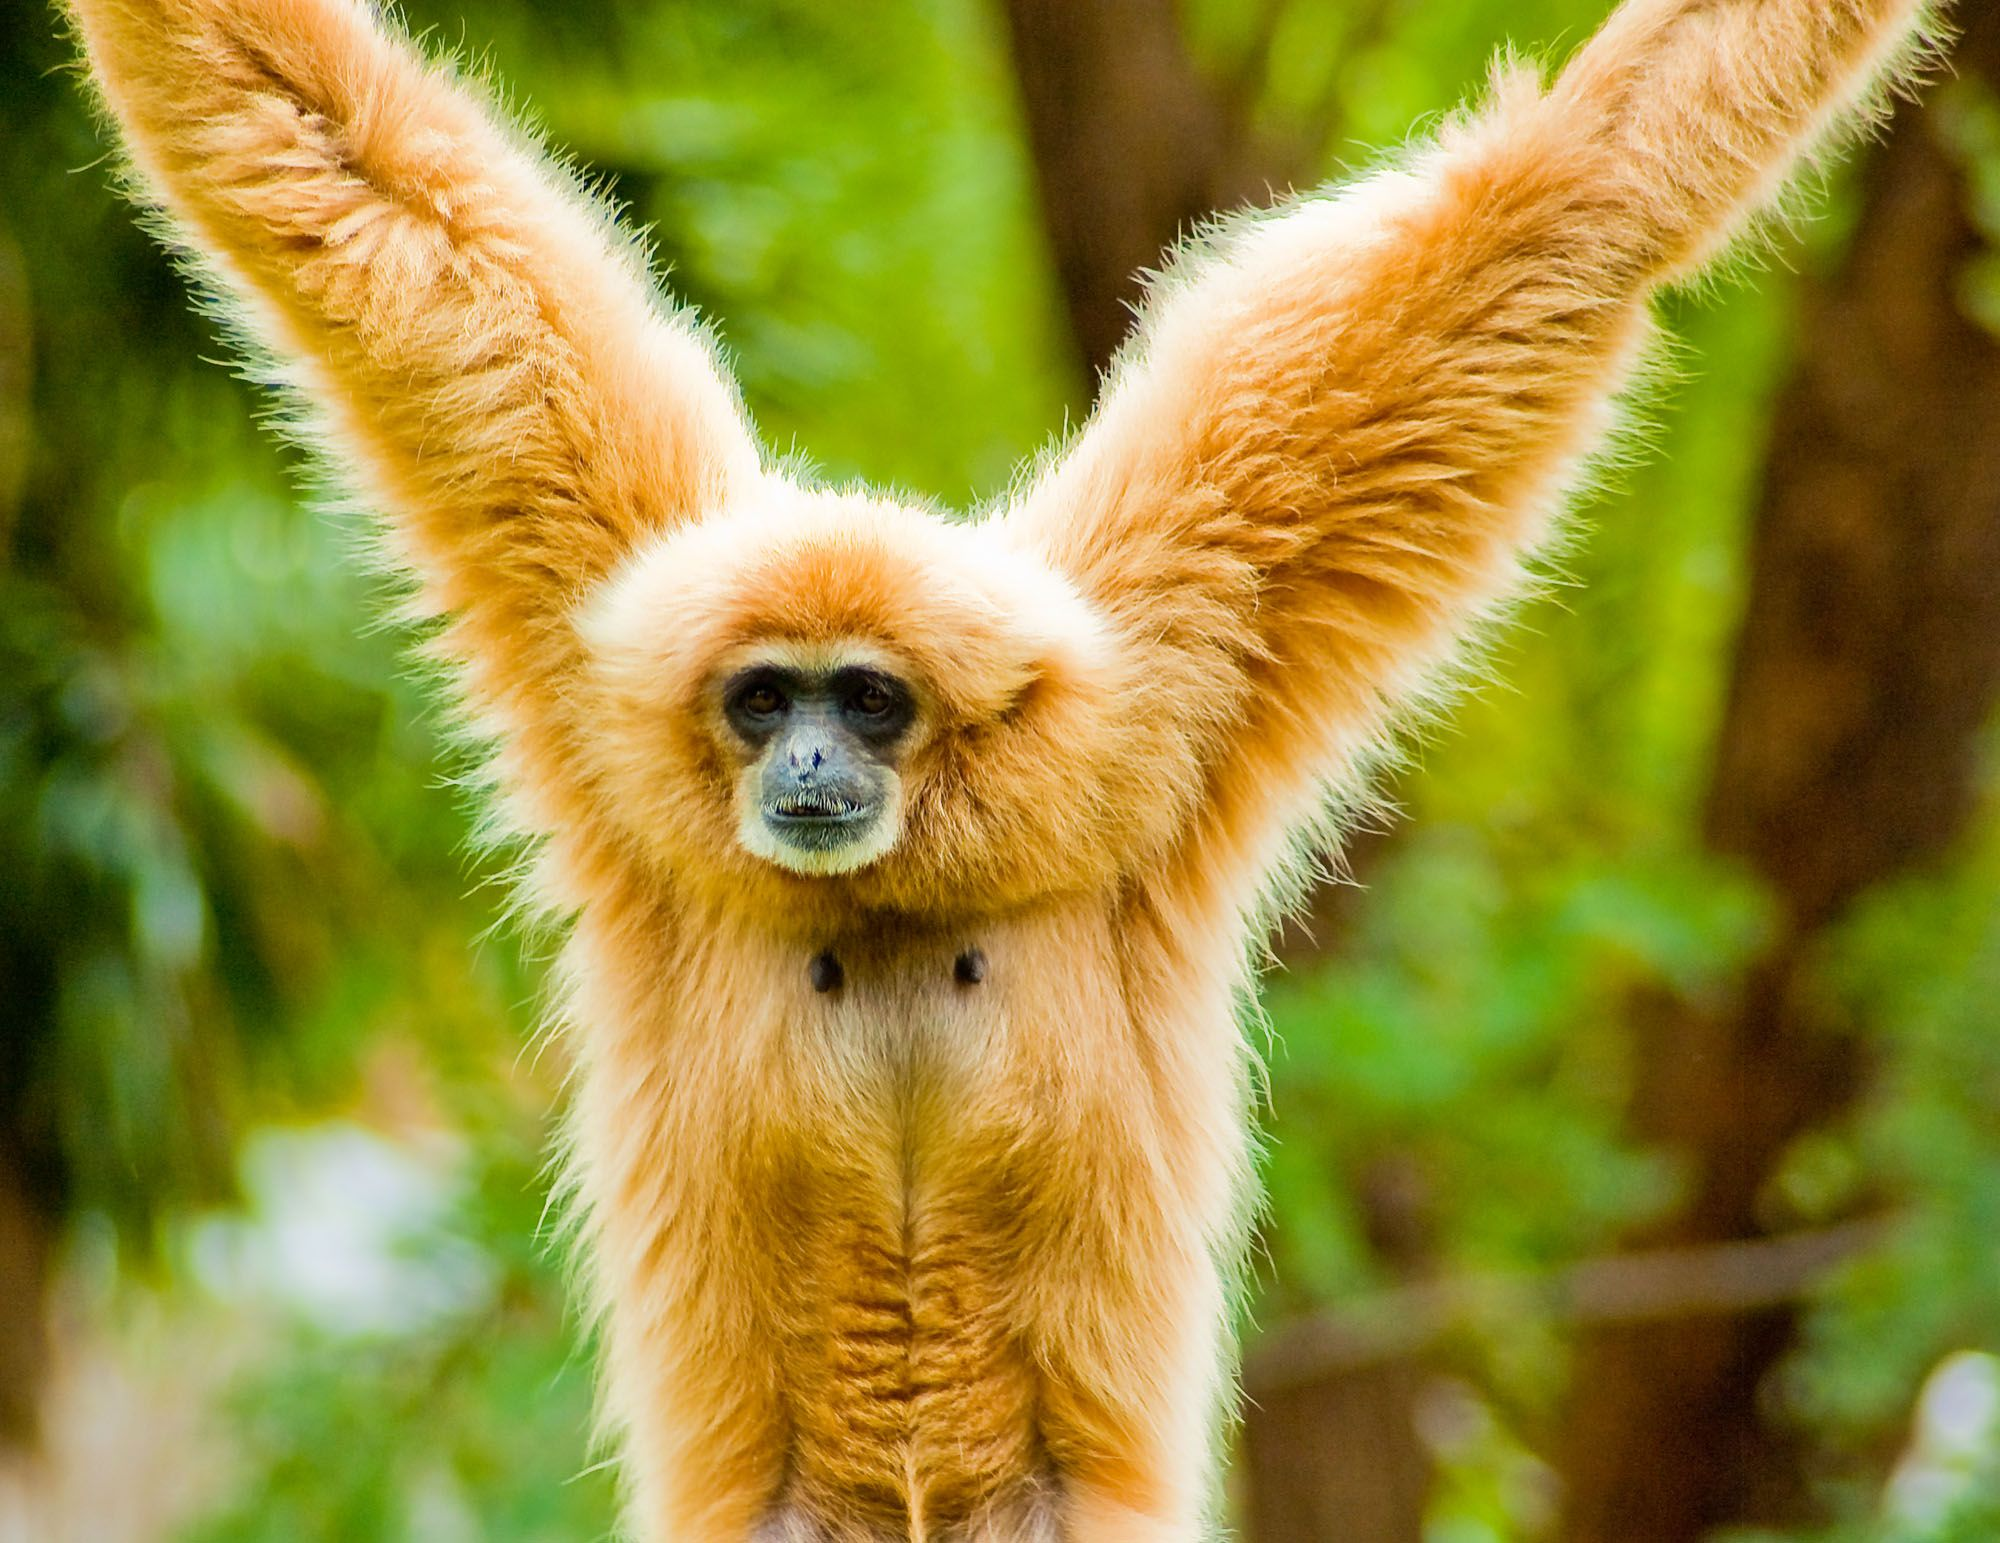 Gibbons are apes in the family Hylobatidae. Gibbons occur